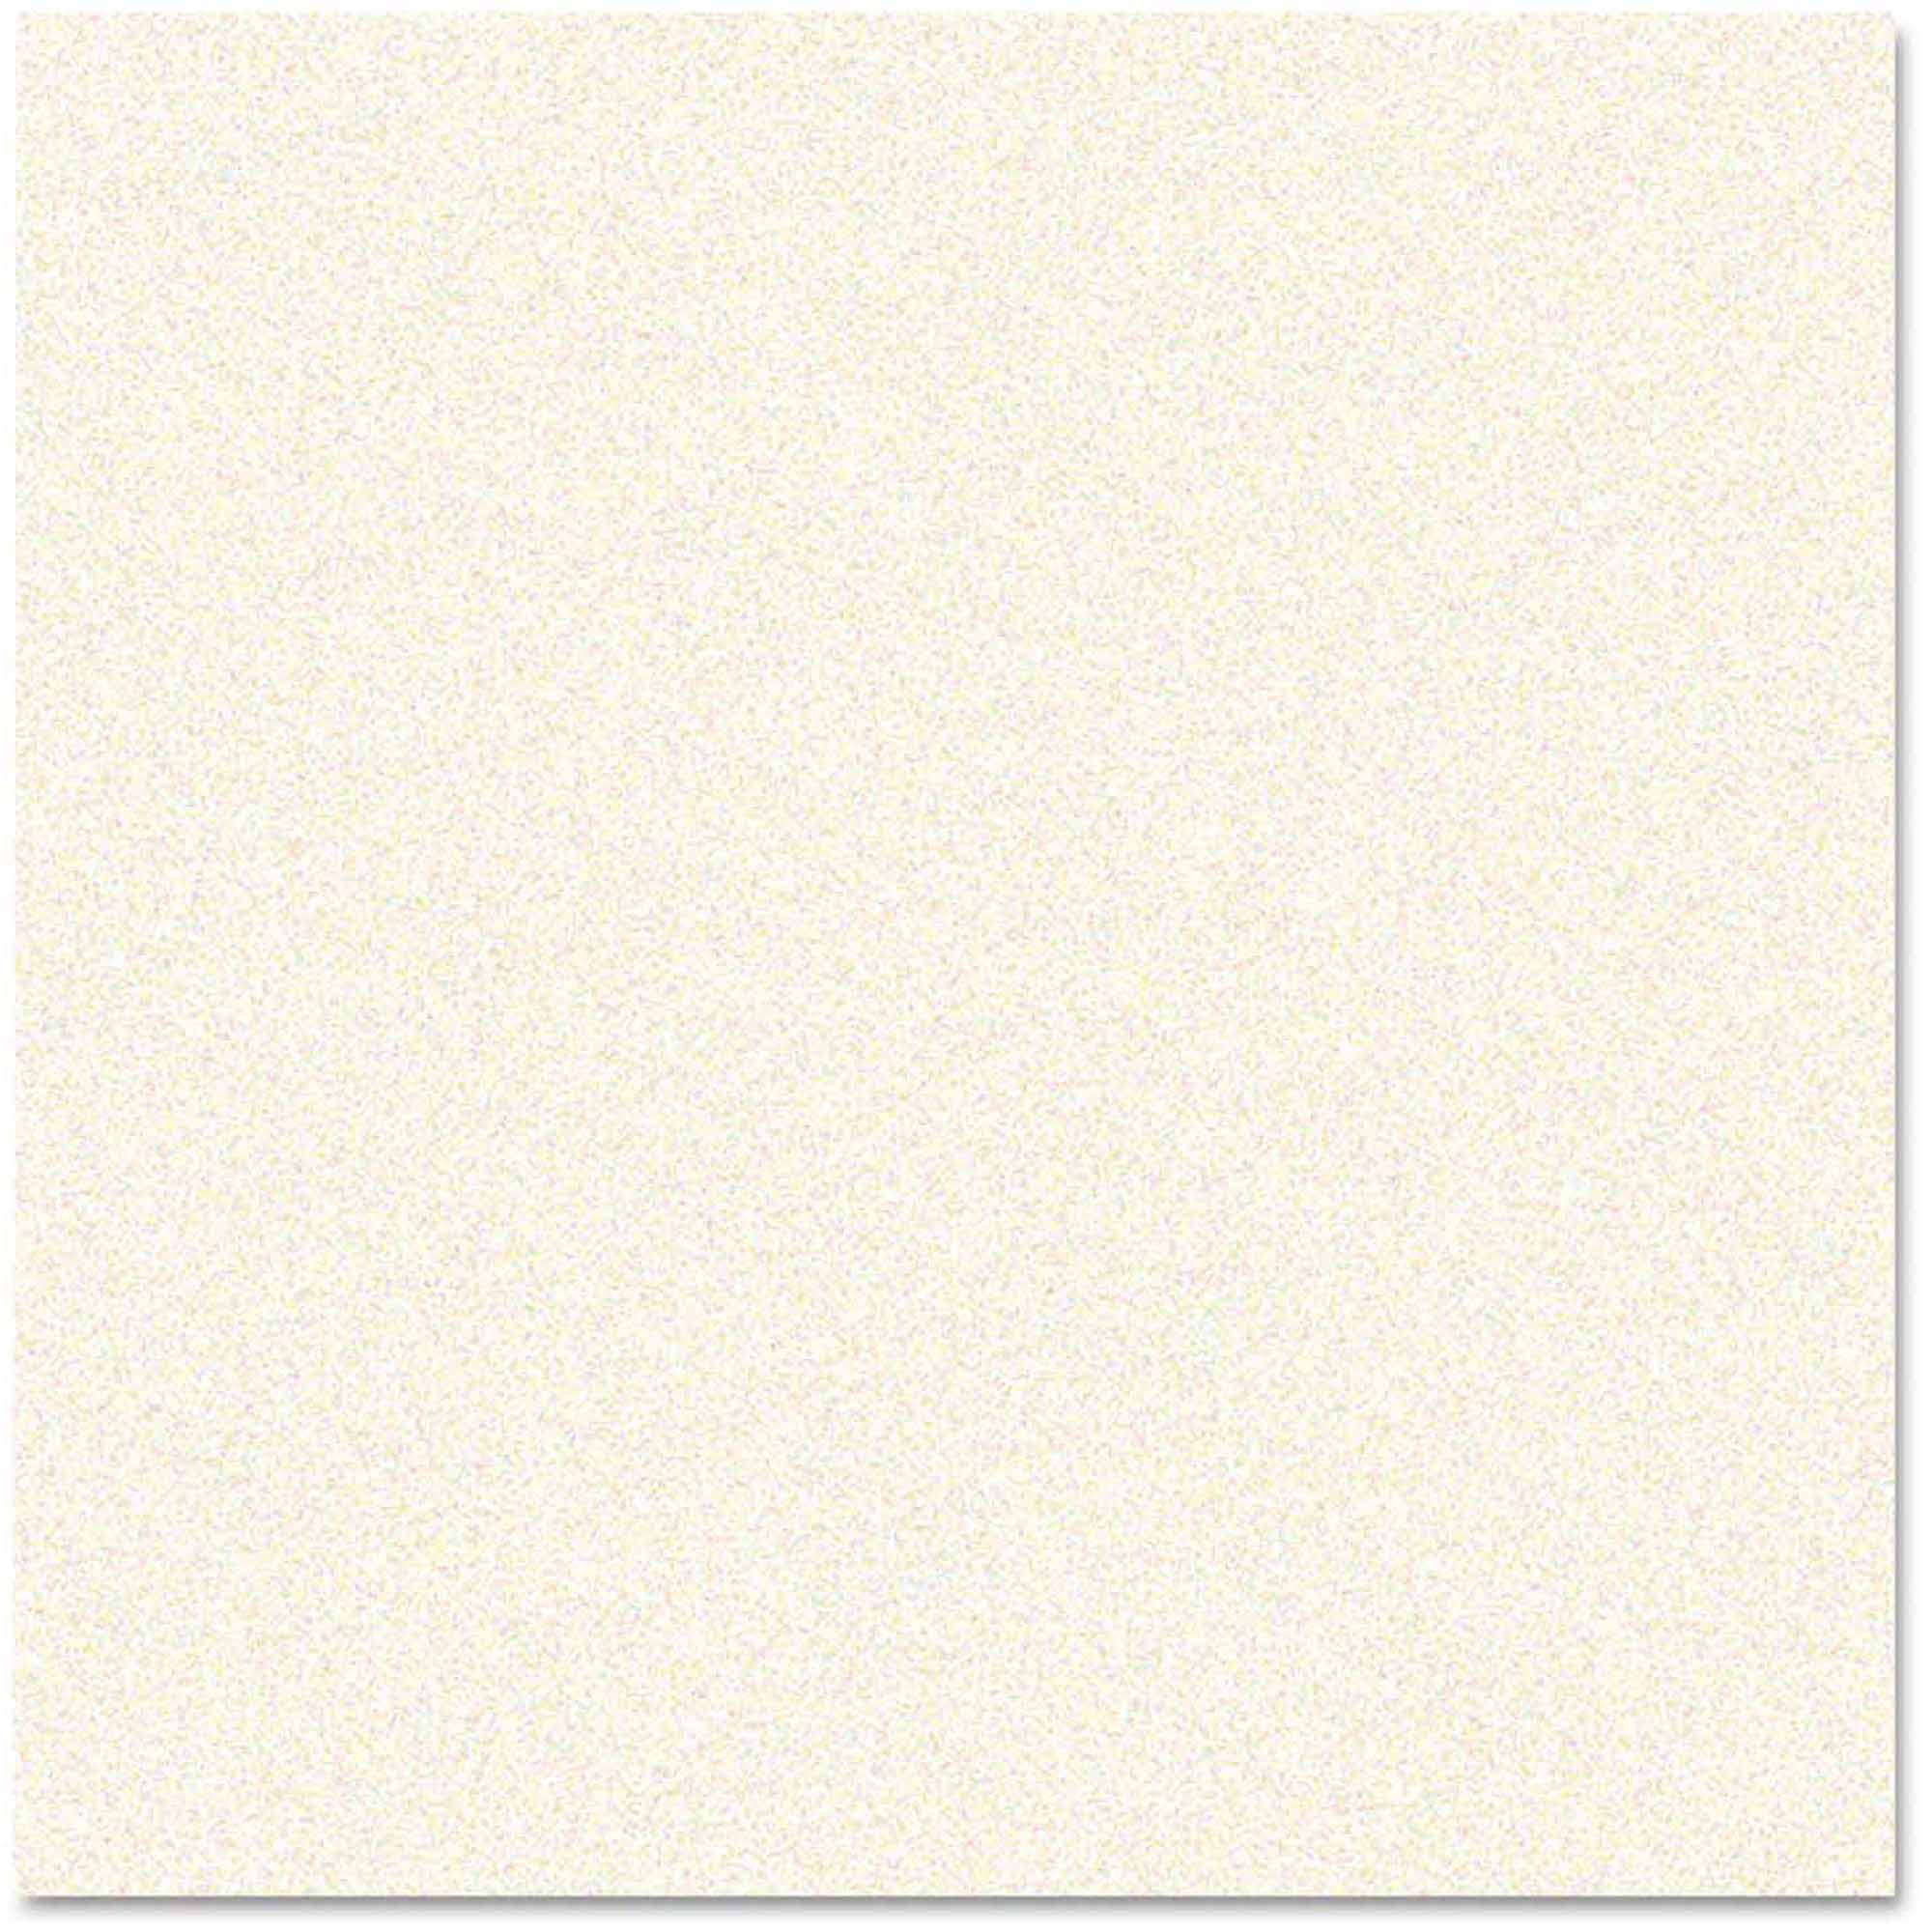 Southworth Granite Specialty Paper, Ivory, 32 lbs., 8-1/2 x 11, 25% Cotton, 250/Box